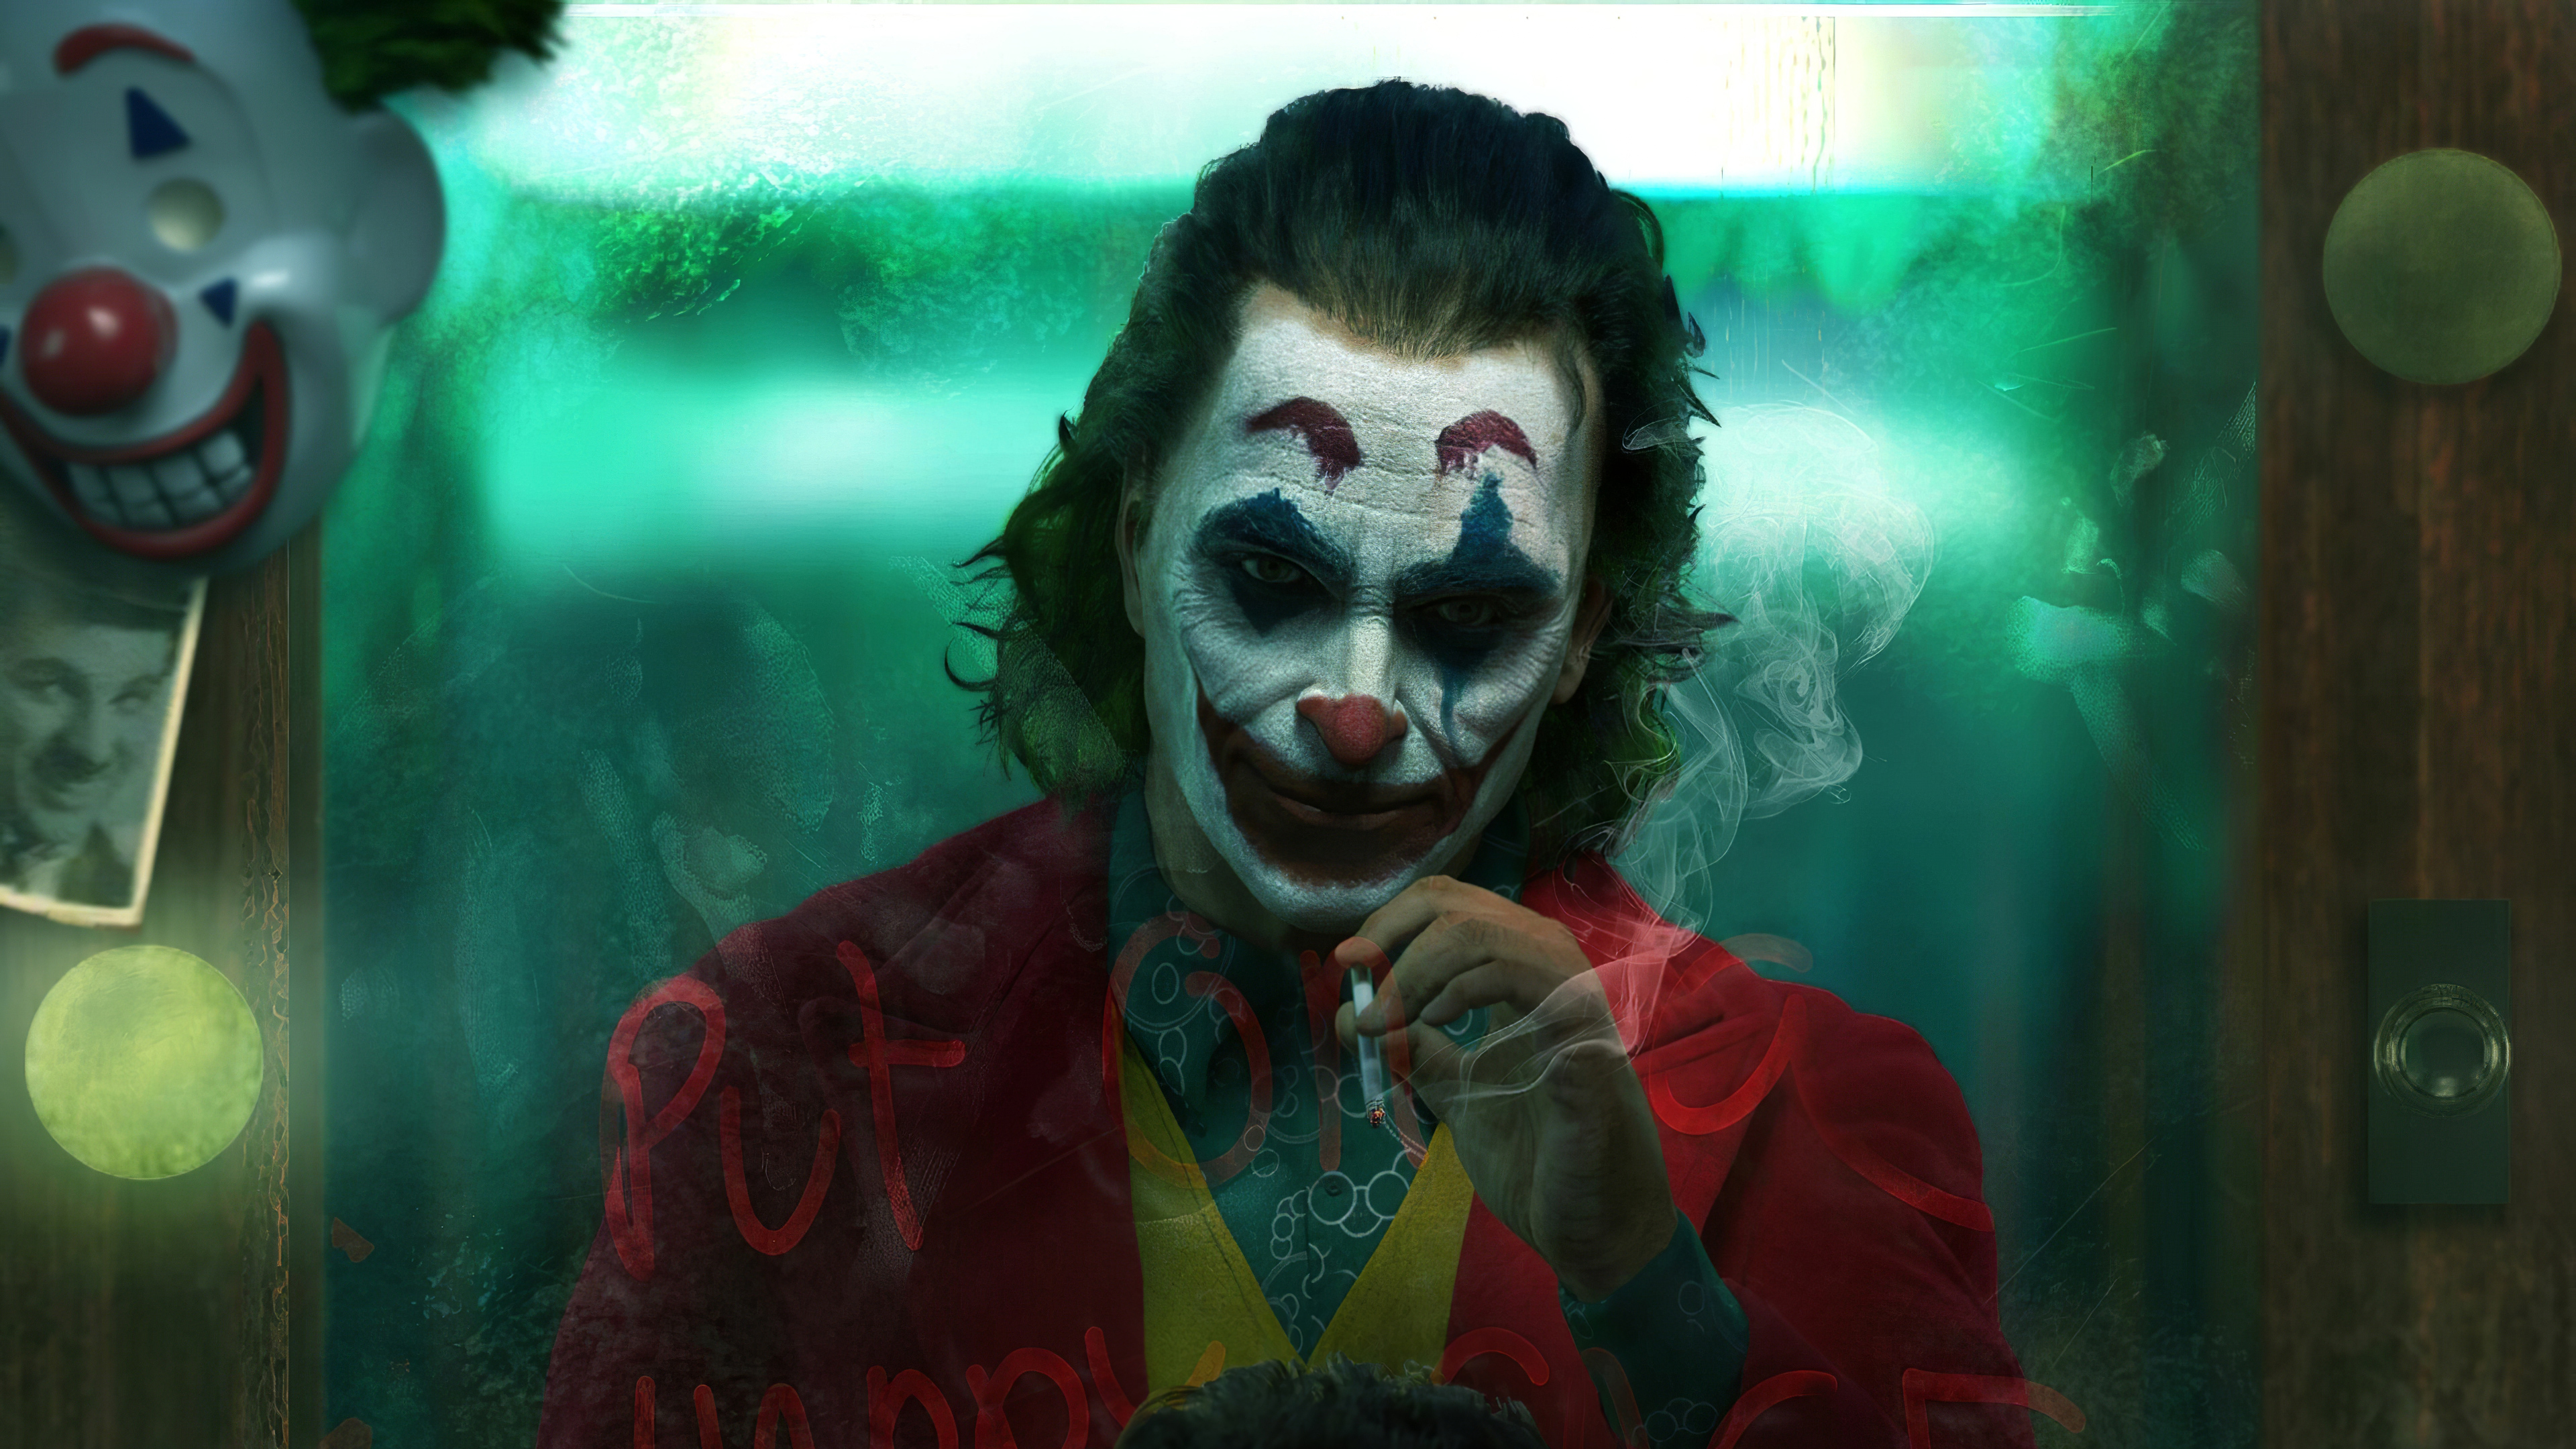 The Joker Fanart Smoke 4k Hd Superheroes 4k Wallpapers Images Backgrounds Photos And Pictures